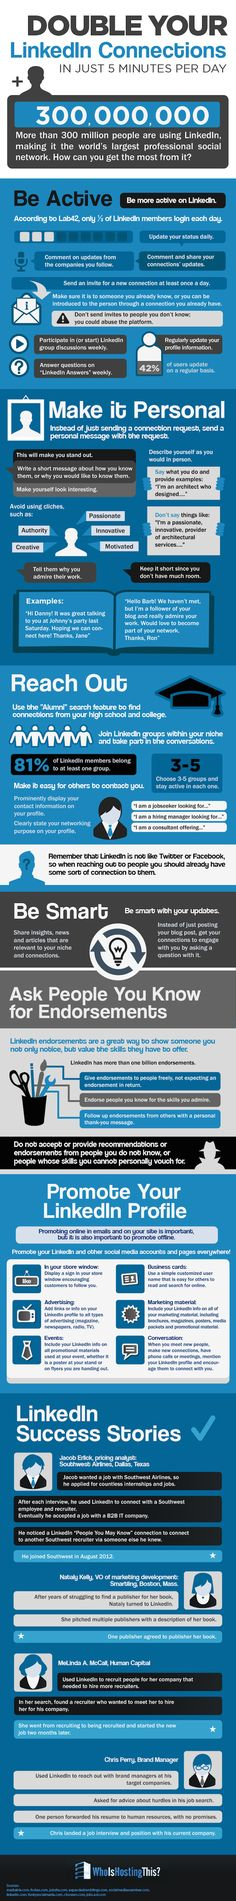 6 Steps to Double Your LinkedIn Network [Infographic]